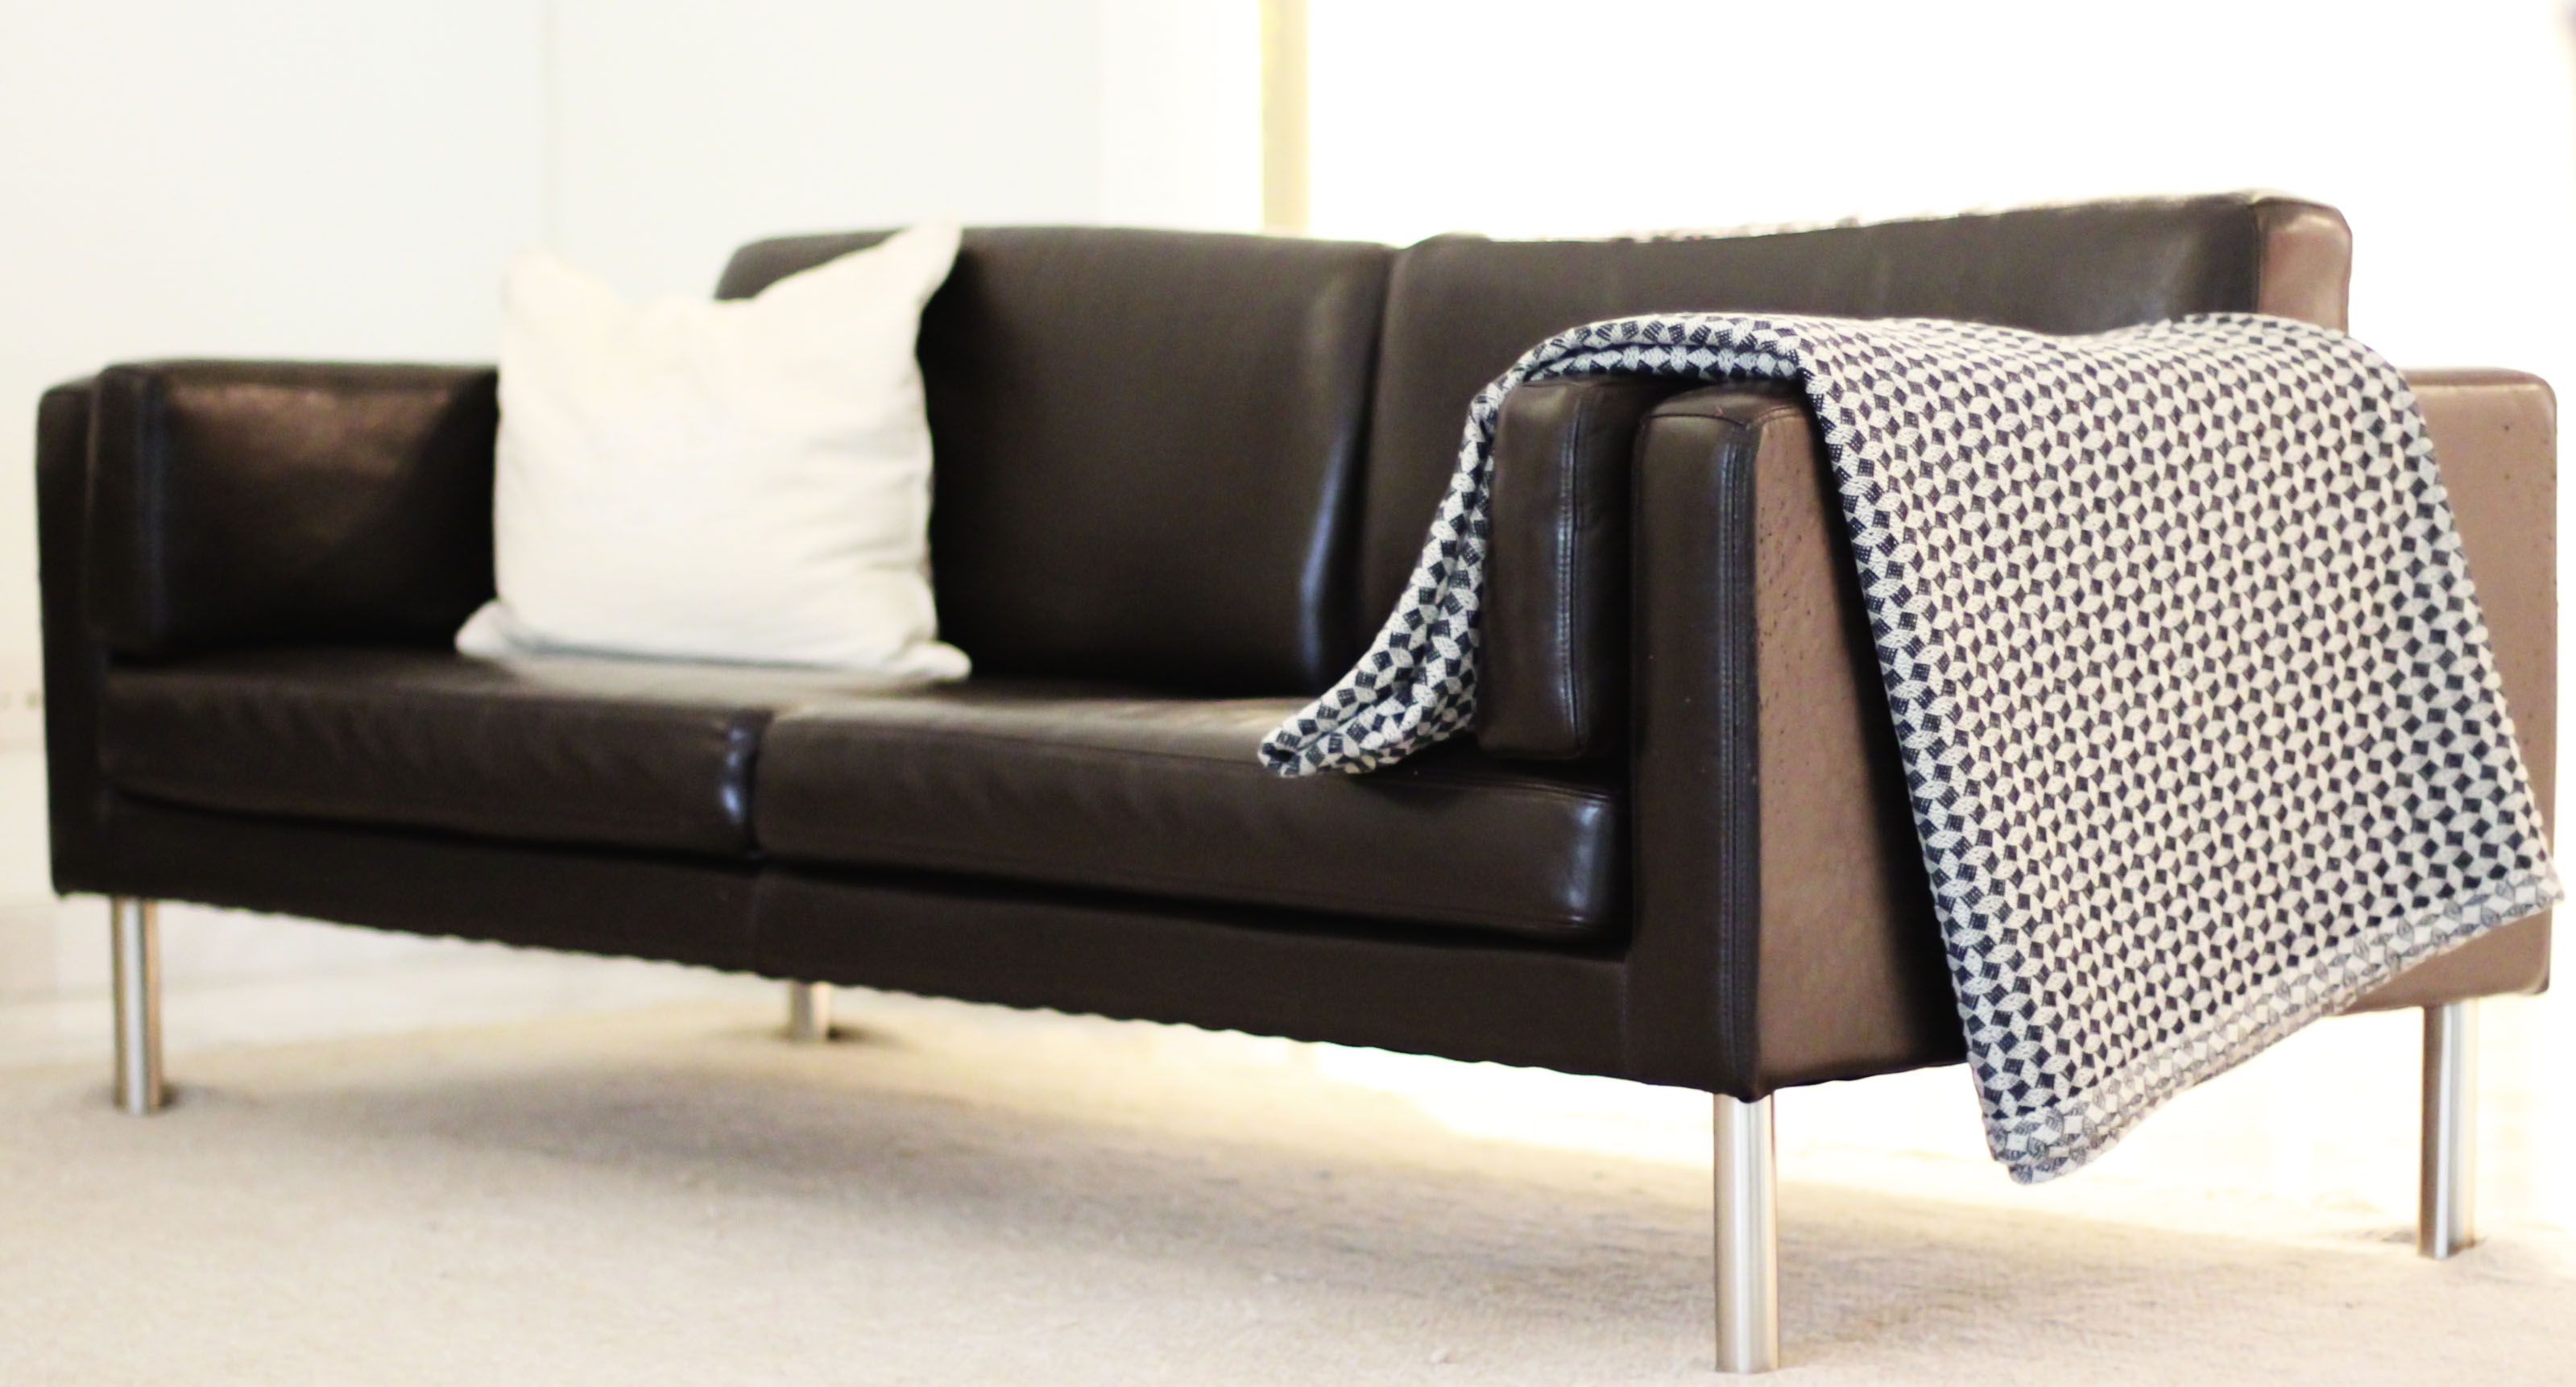 Ikea leather chair brown - Leather Sofa Ikea For Upstate Weekend House